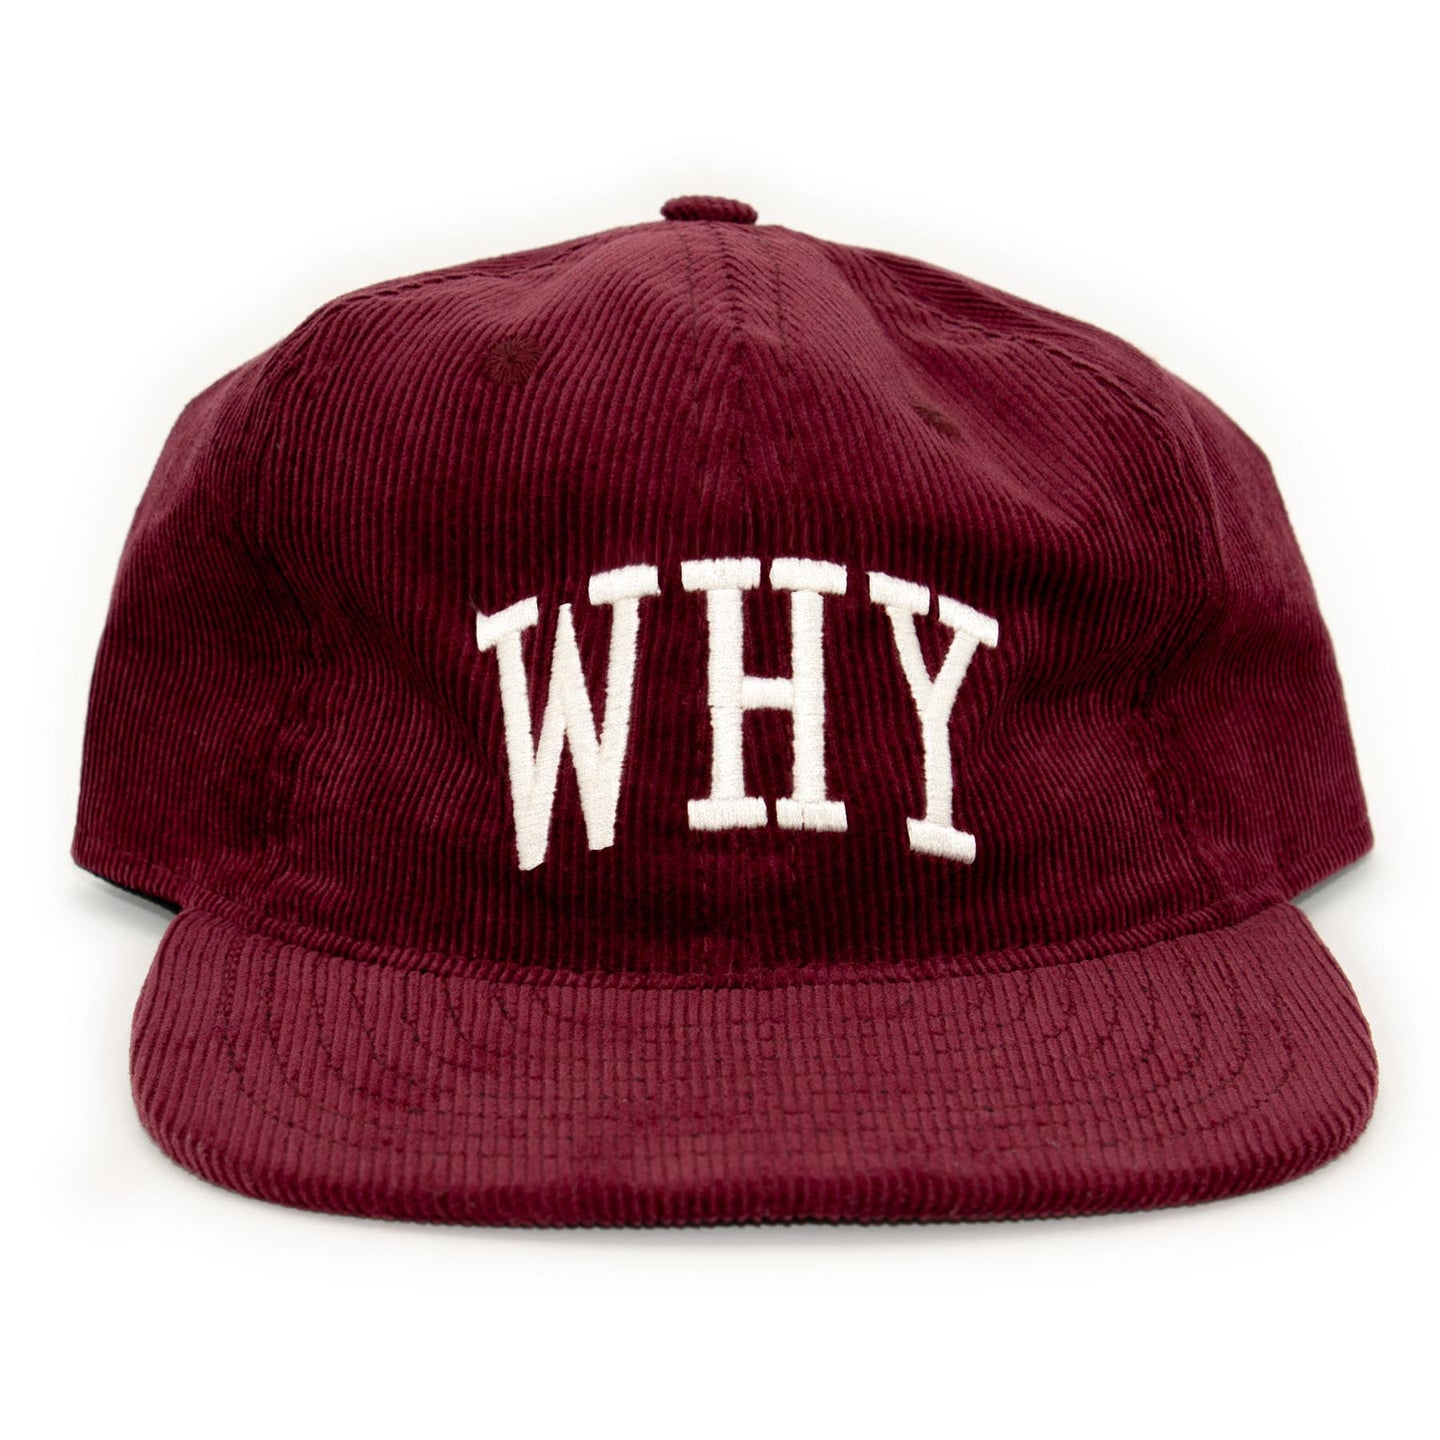 WHY HAT - MERLOT - CENTRAL HIGH - HAT CENTRAL HIGH BRAND